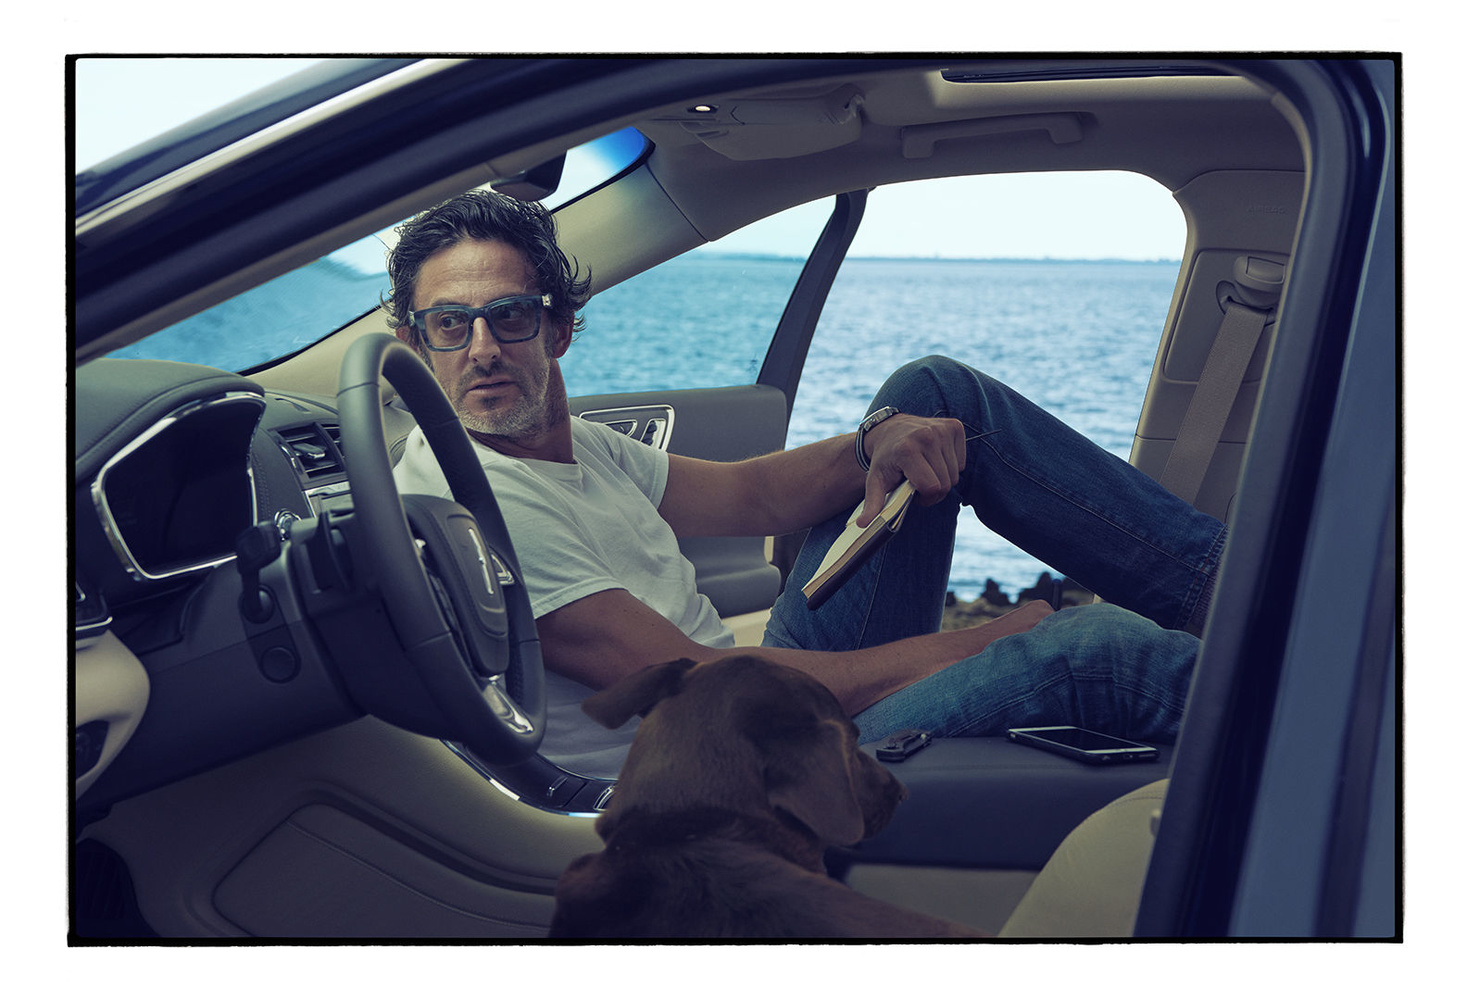 That's Continental, photographed by Annie Leibovitz